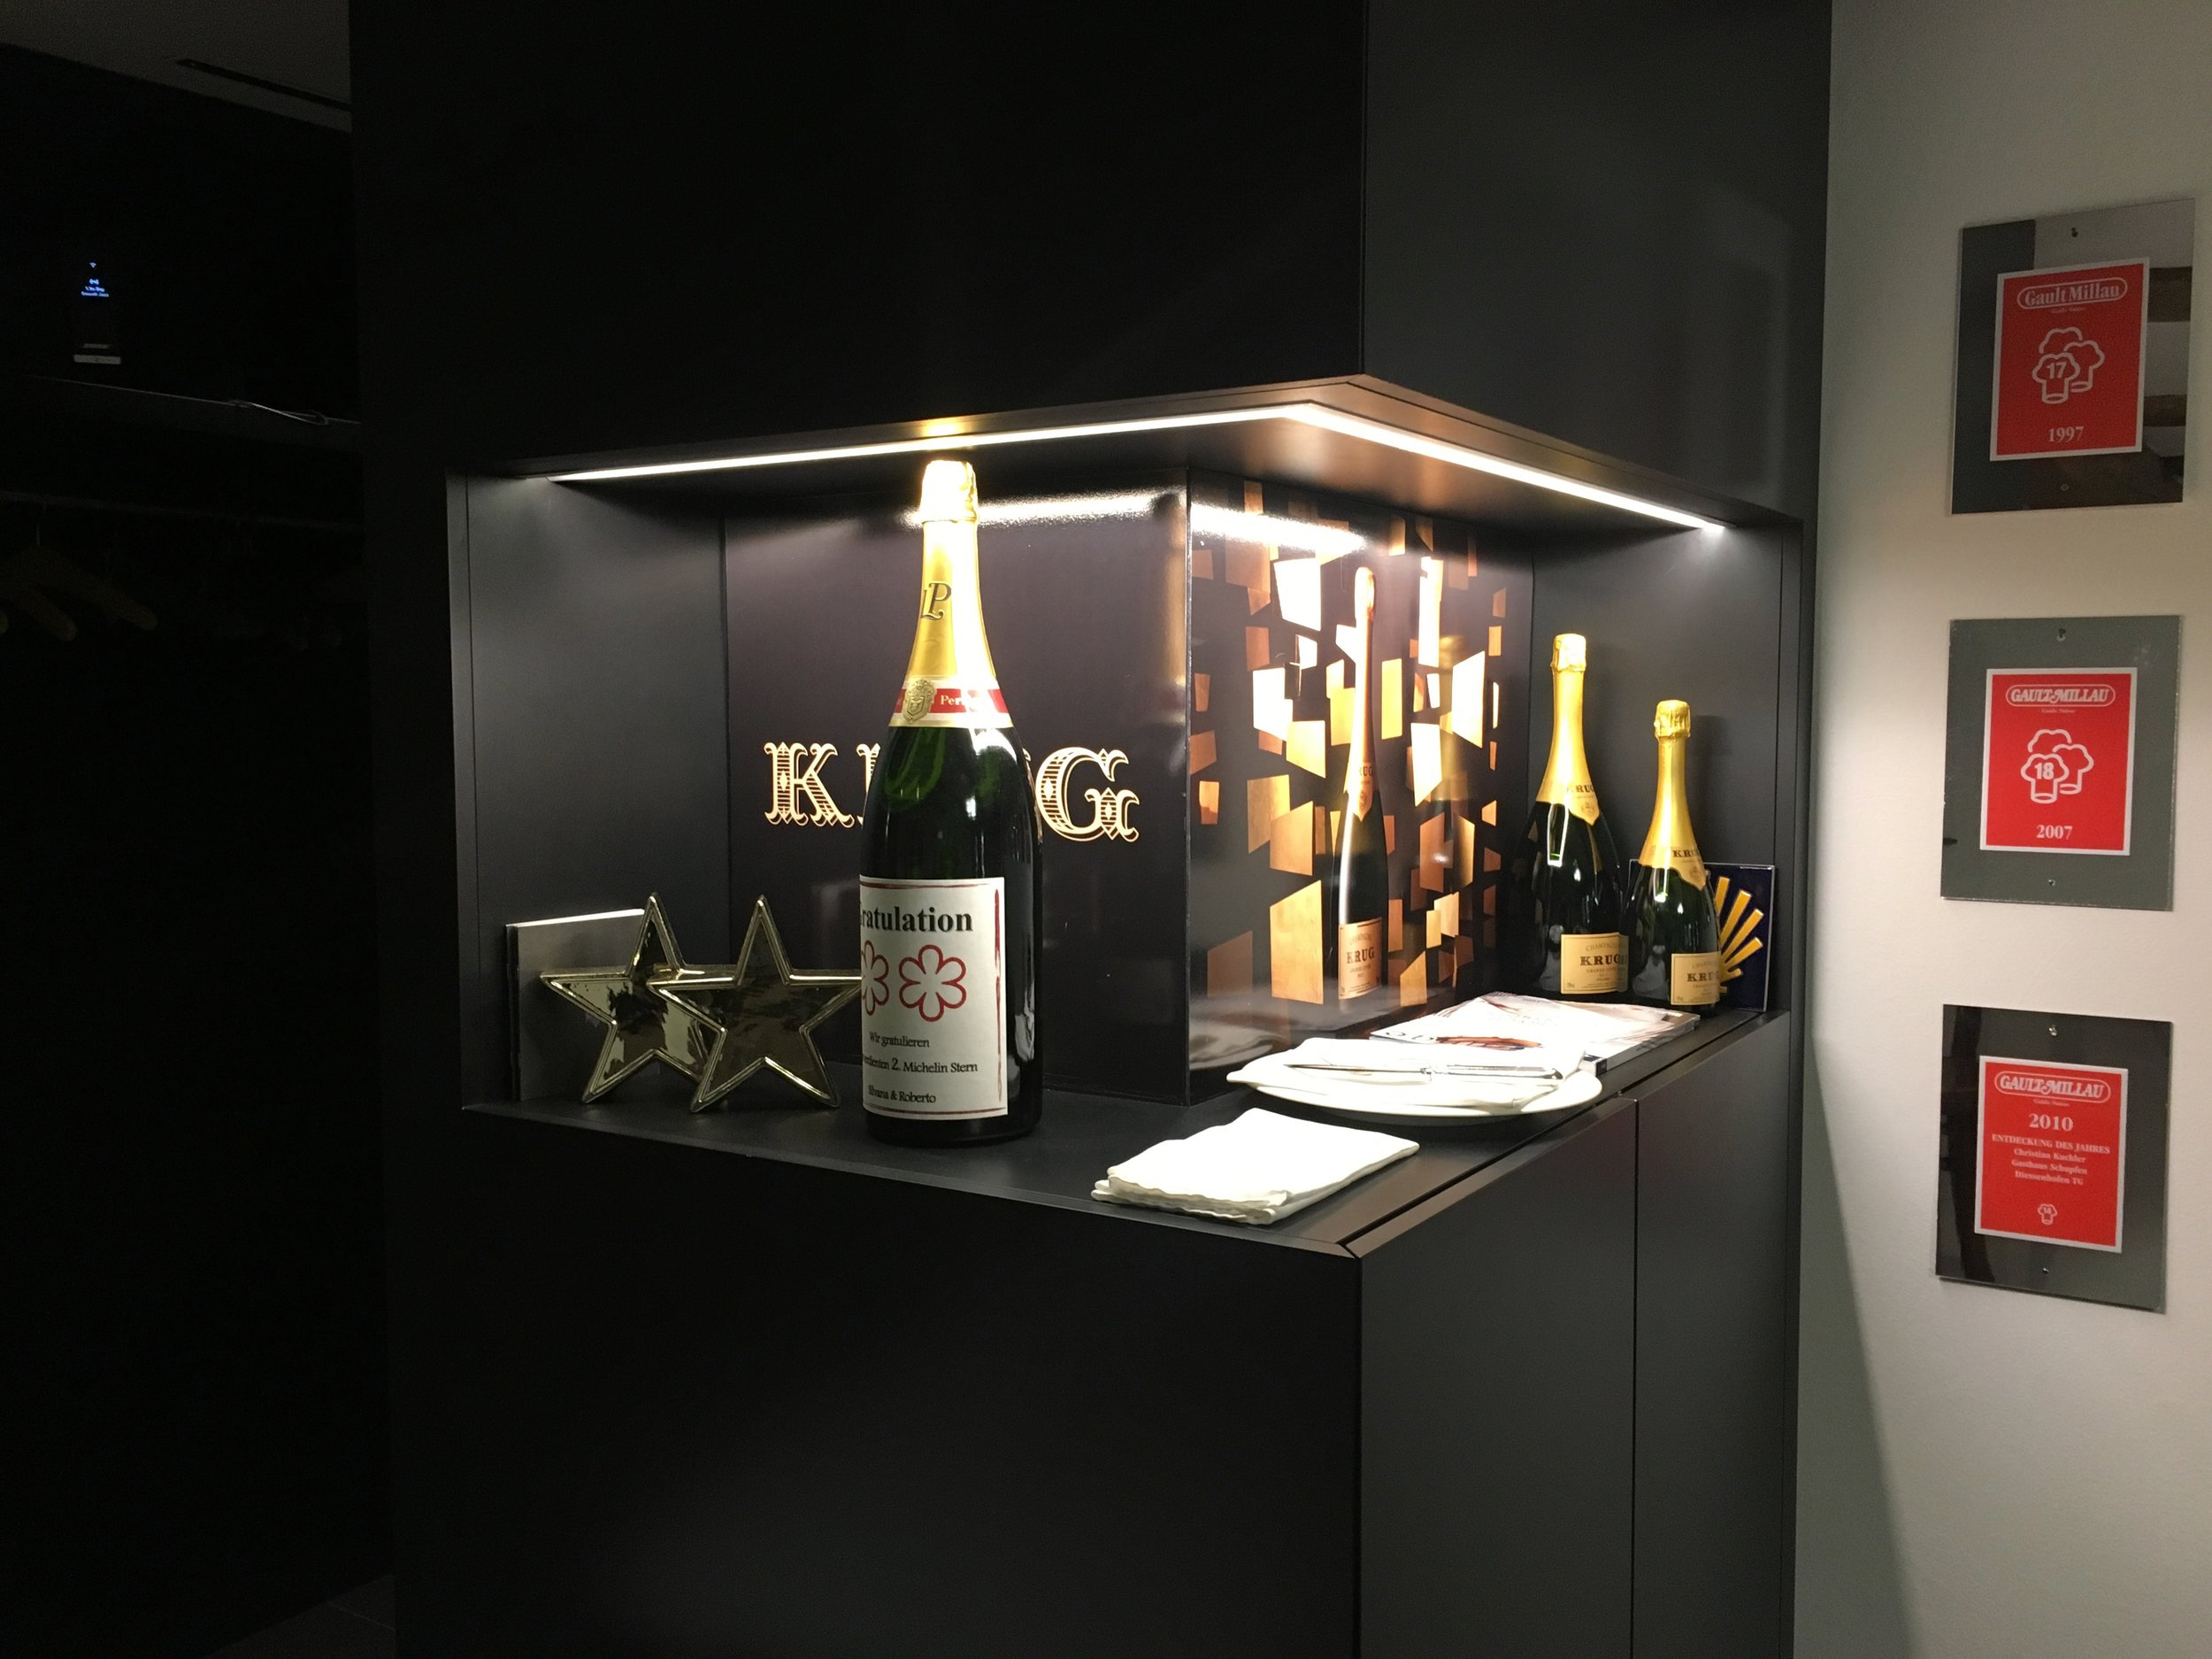 When entering, the two stars greet you with a magnum bottle of Krug